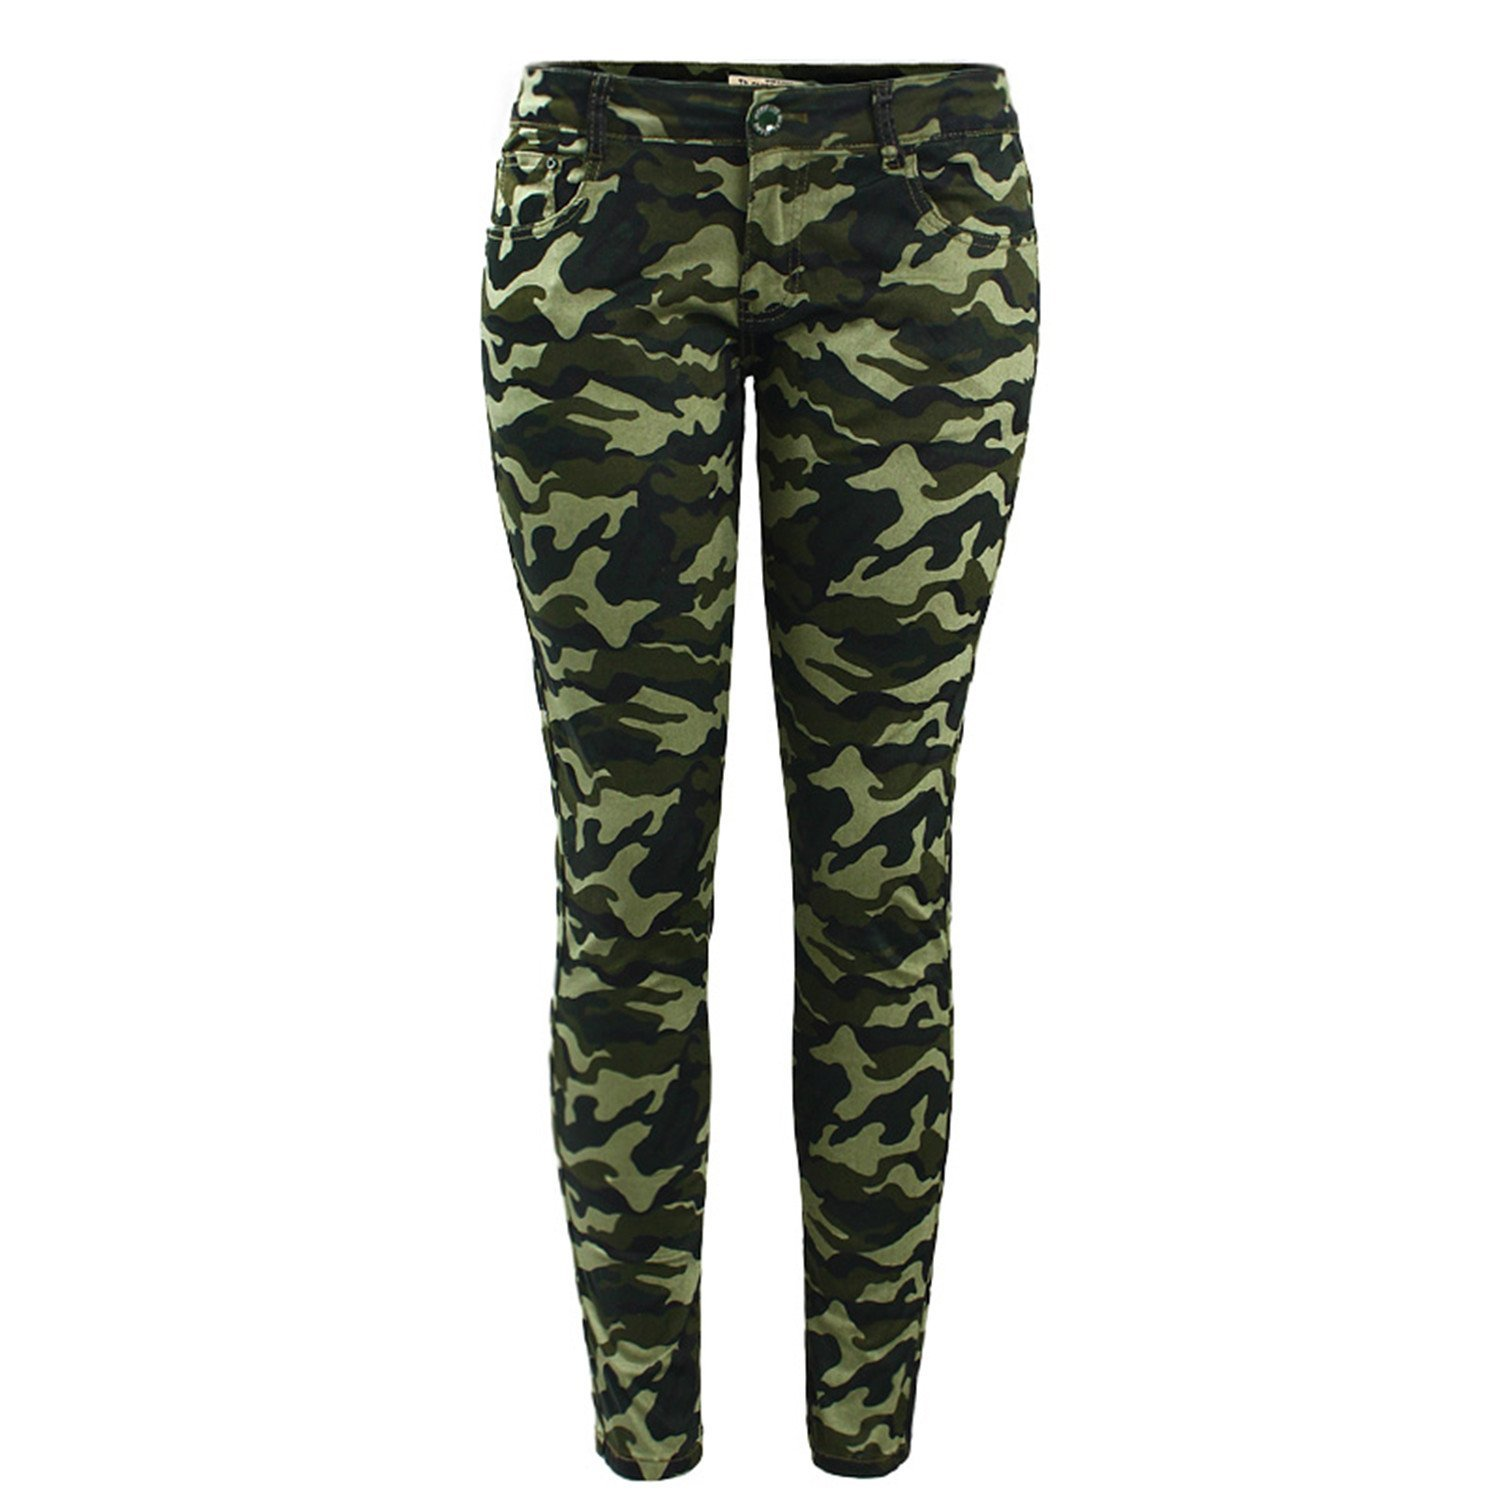 c3047f336e7e Get Quotations · Vilma Reynoso Plus Size Chic Army Green Skinny Jeans For Women  Camouflage Cropped Pencil Pants